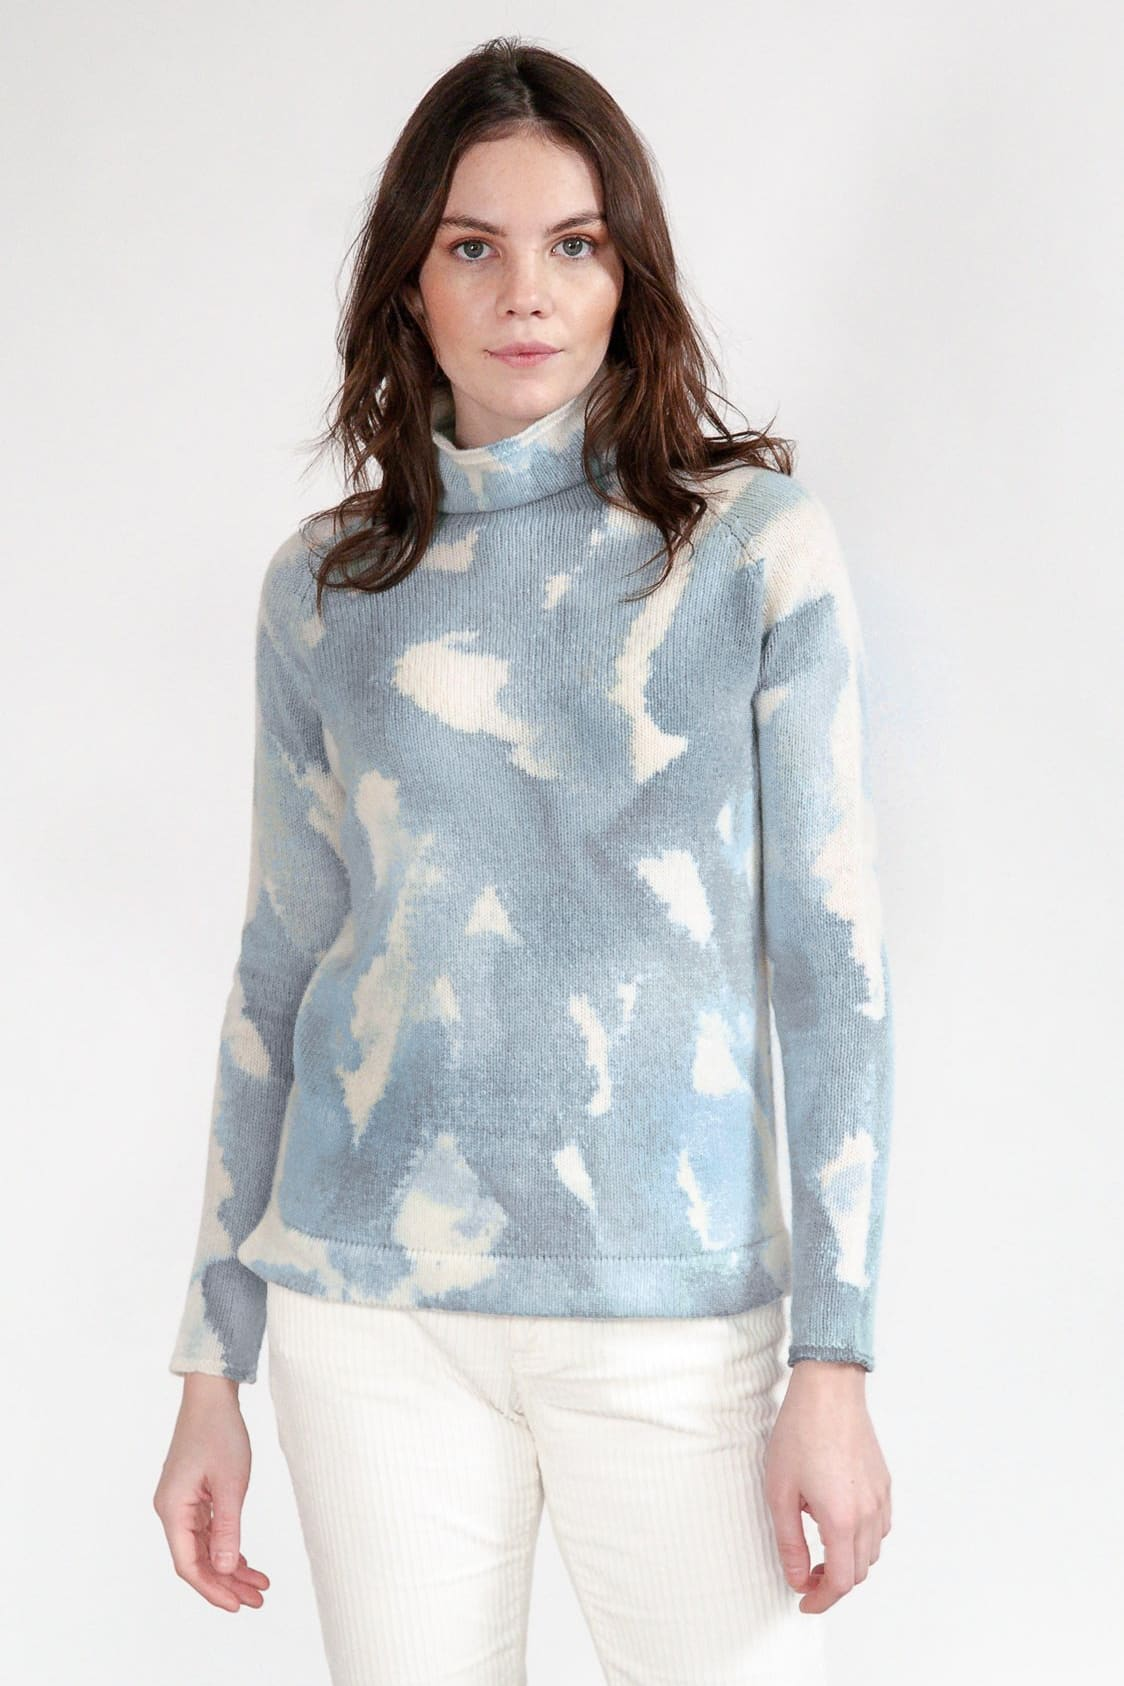 Rhue Hand Painted Turtleneck - Ocean Storm - Sweaters